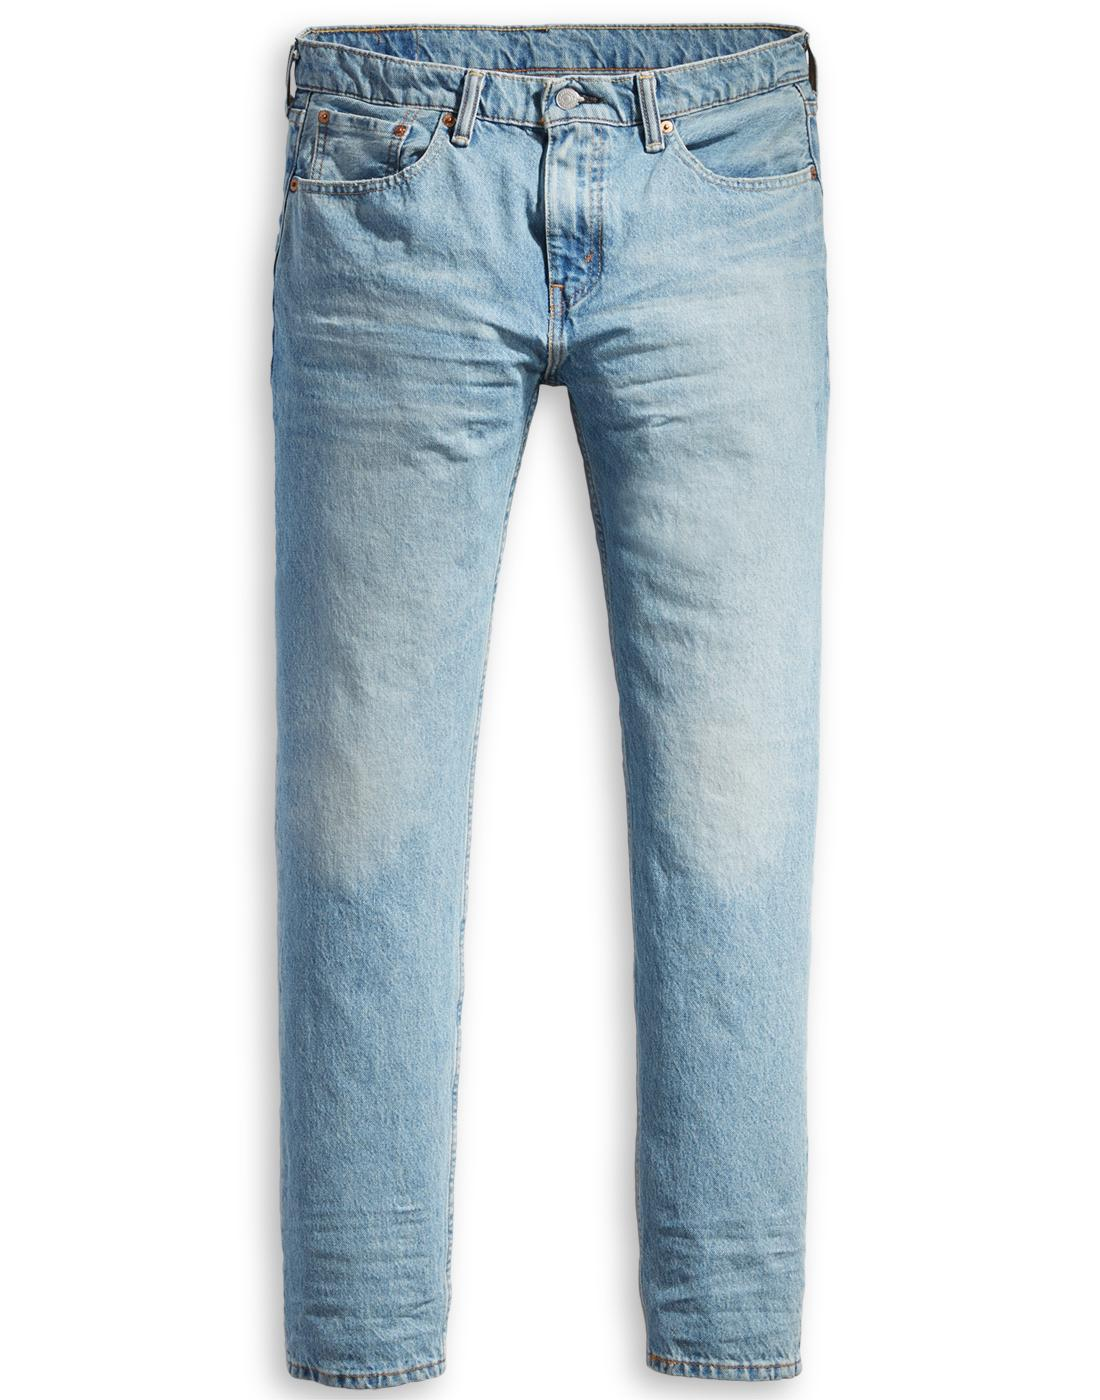 ef94ce3aee3865 LEVI'S 502 Men's Retro Mod Regular Tapered Jeans in Blue